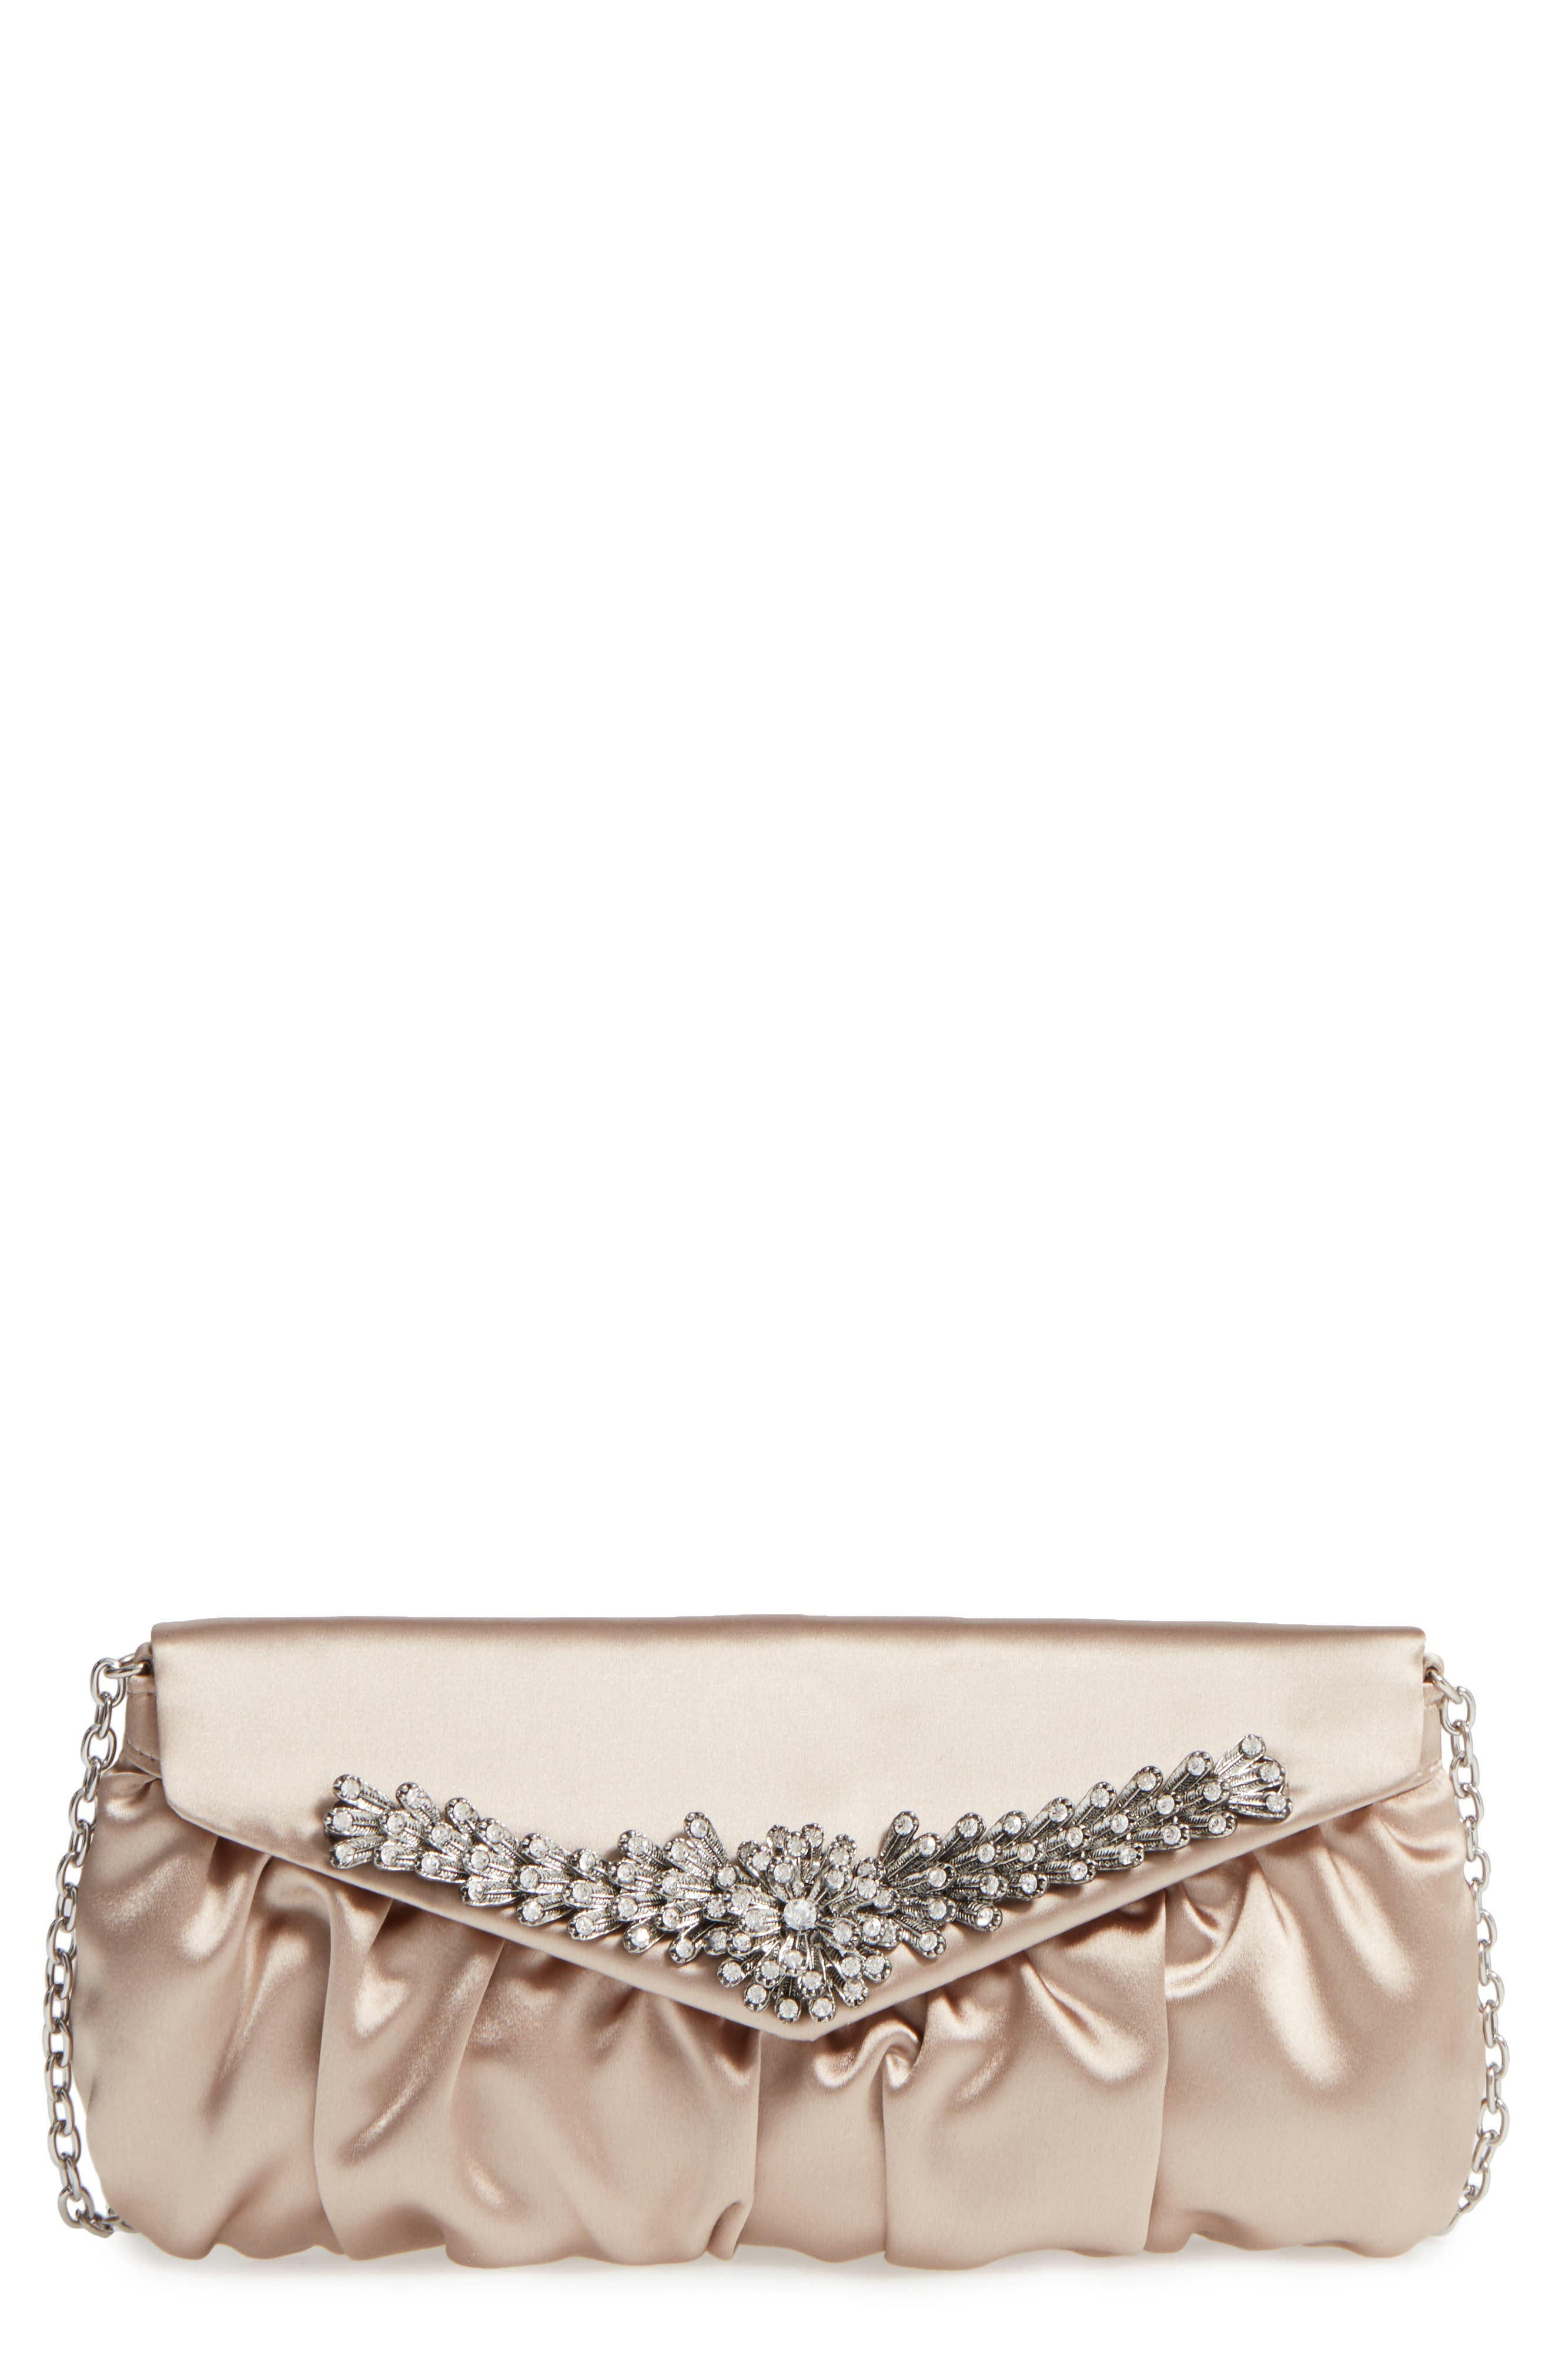 Caracas Crystal Embellished Clutch,                             Main thumbnail 1, color,                             Stone